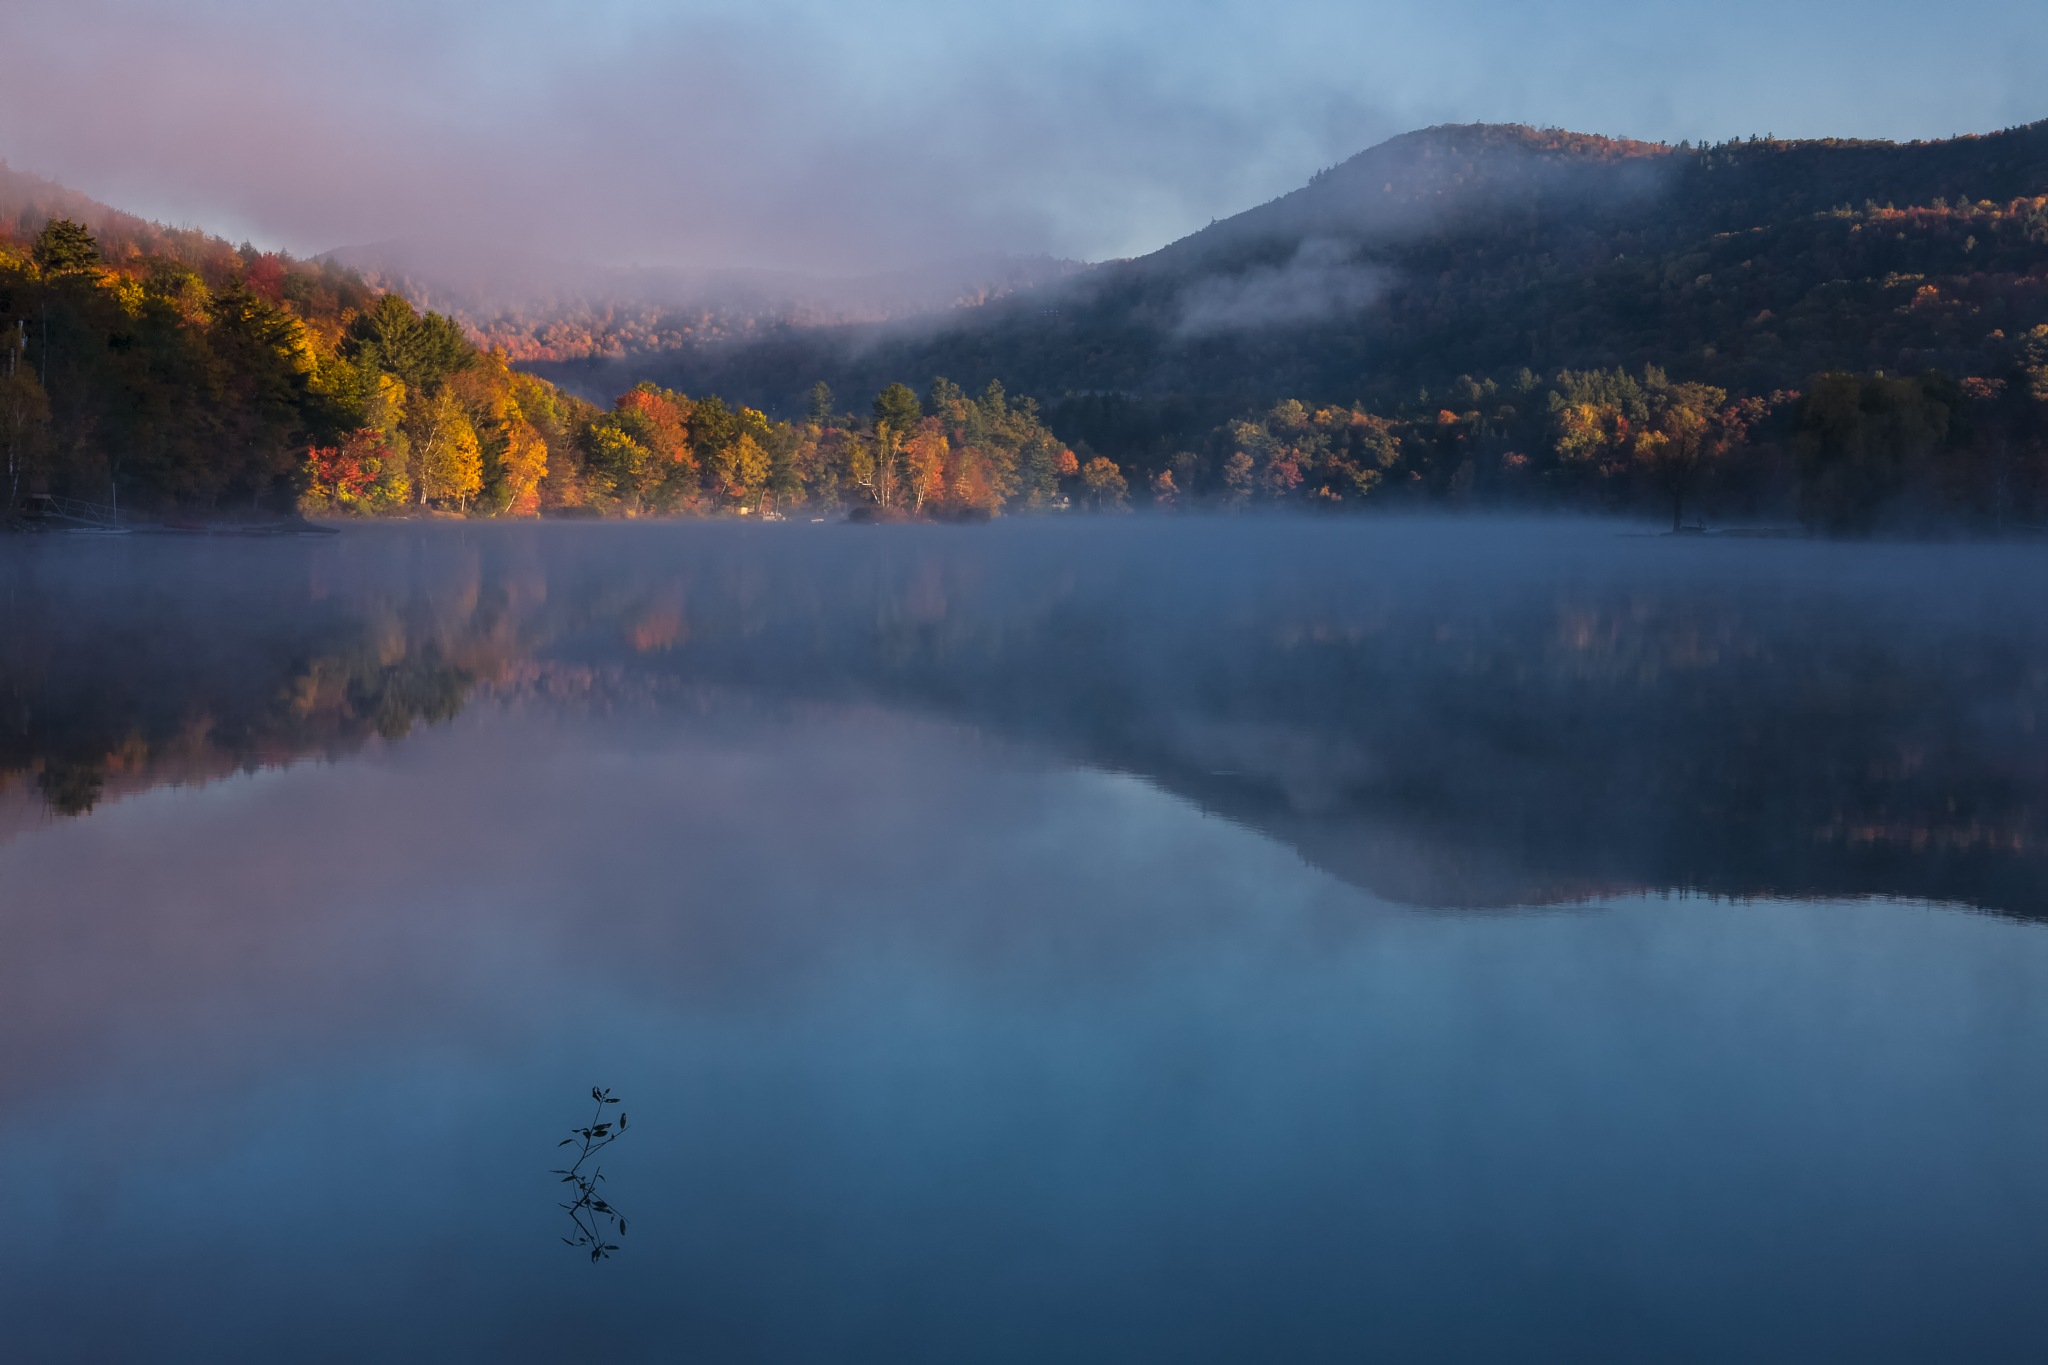 Autumn reflection by Dianachang